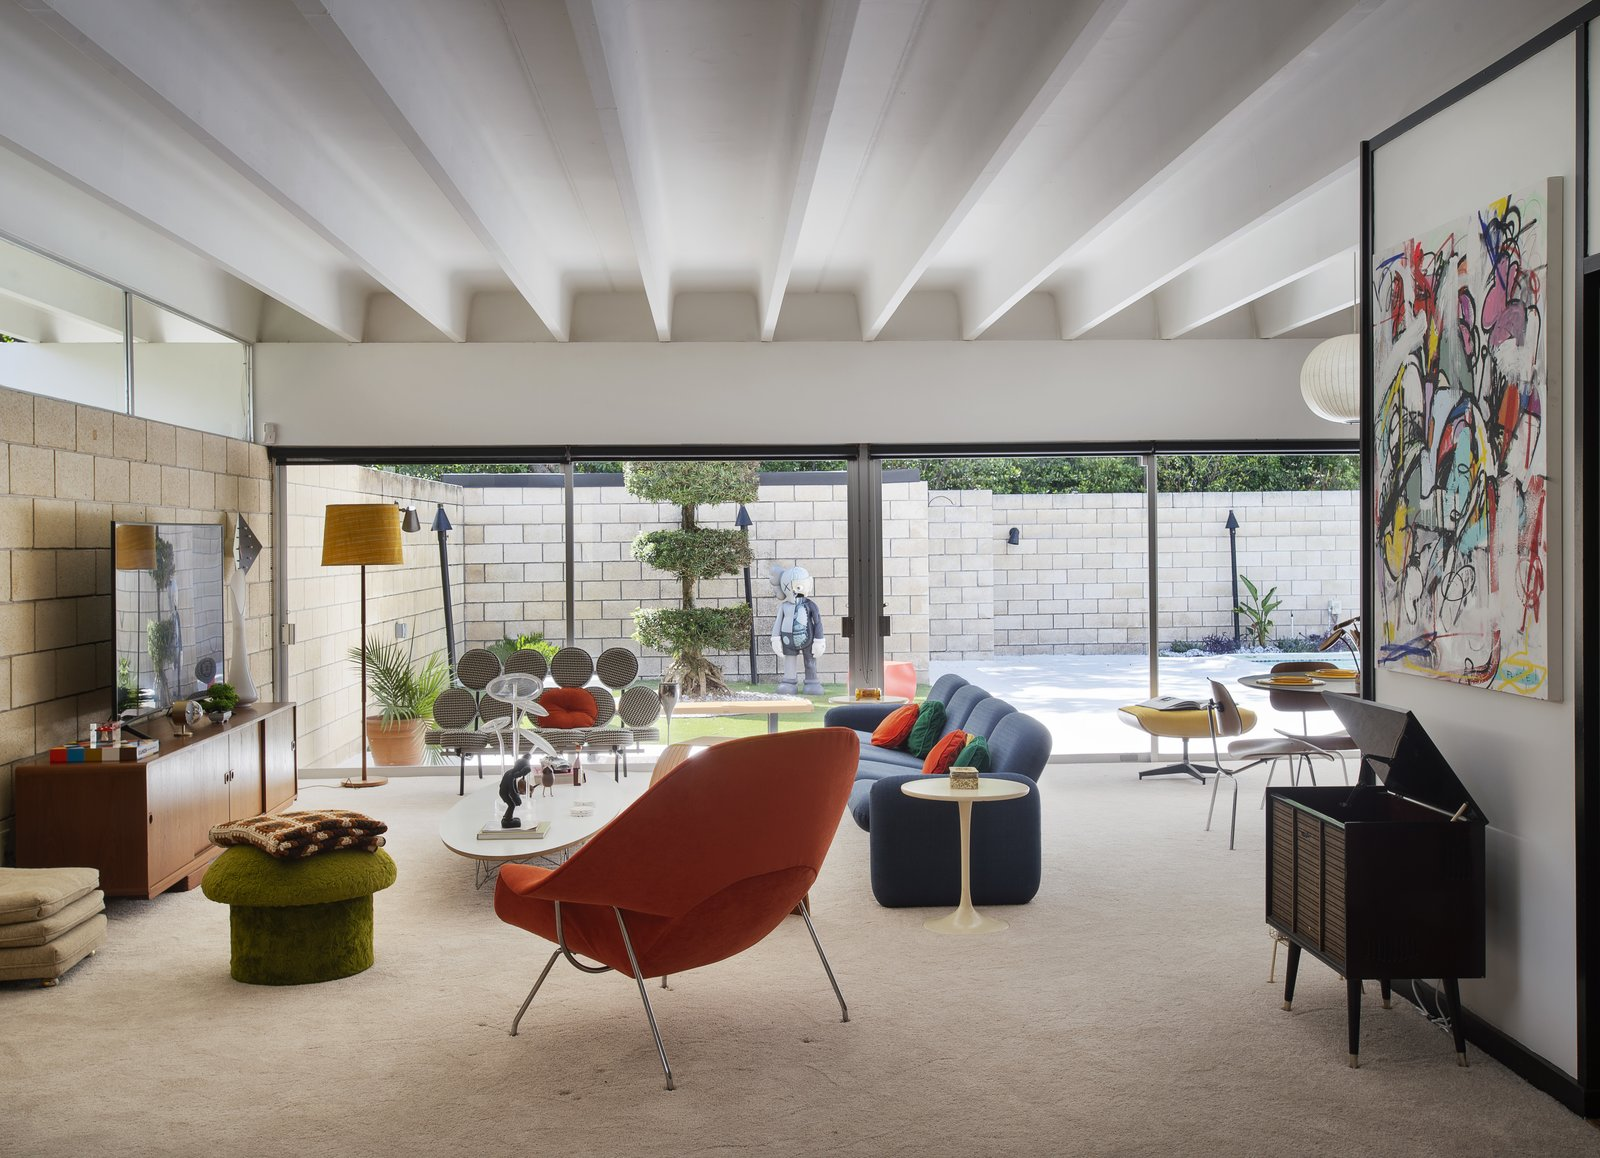 Living Room, Media Cabinet, End Tables, Carpet Floor, Chair, Sectional, Coffee Tables, and Floor Lighting The 1946 Womb Chair by Eero Saarinen by Knoll was reupholstered in Knoll Boucle Orange.  The Ellison House from Pop Art, Street Art, and Space-Age Furniture Collide at a Painter's Midcentury Ranch Home in Florida